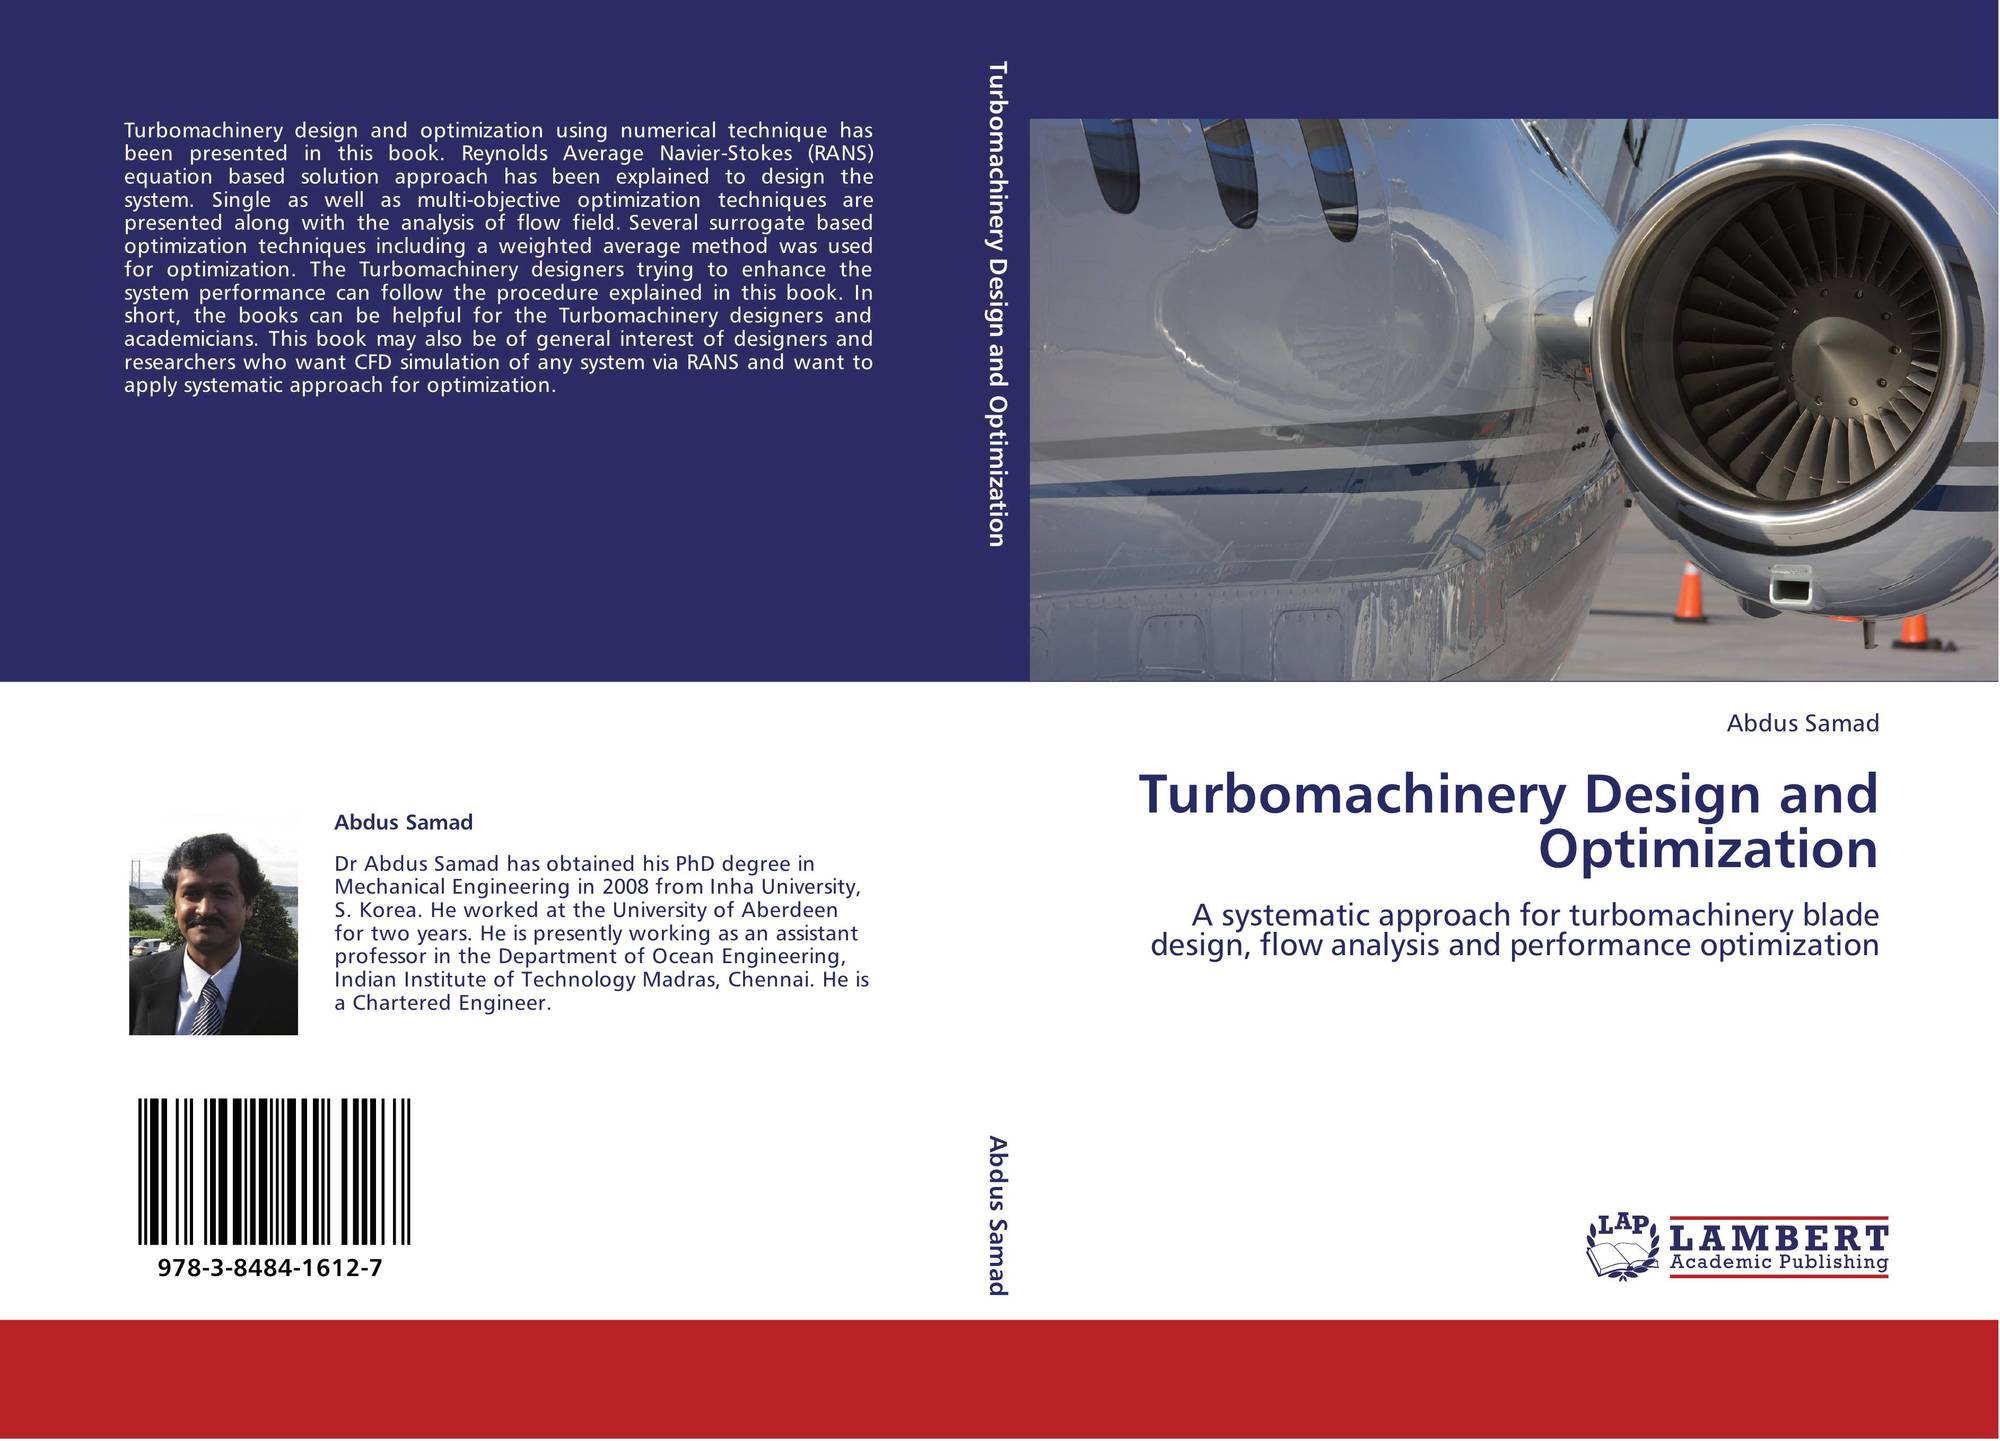 Literature review on turbomachinery